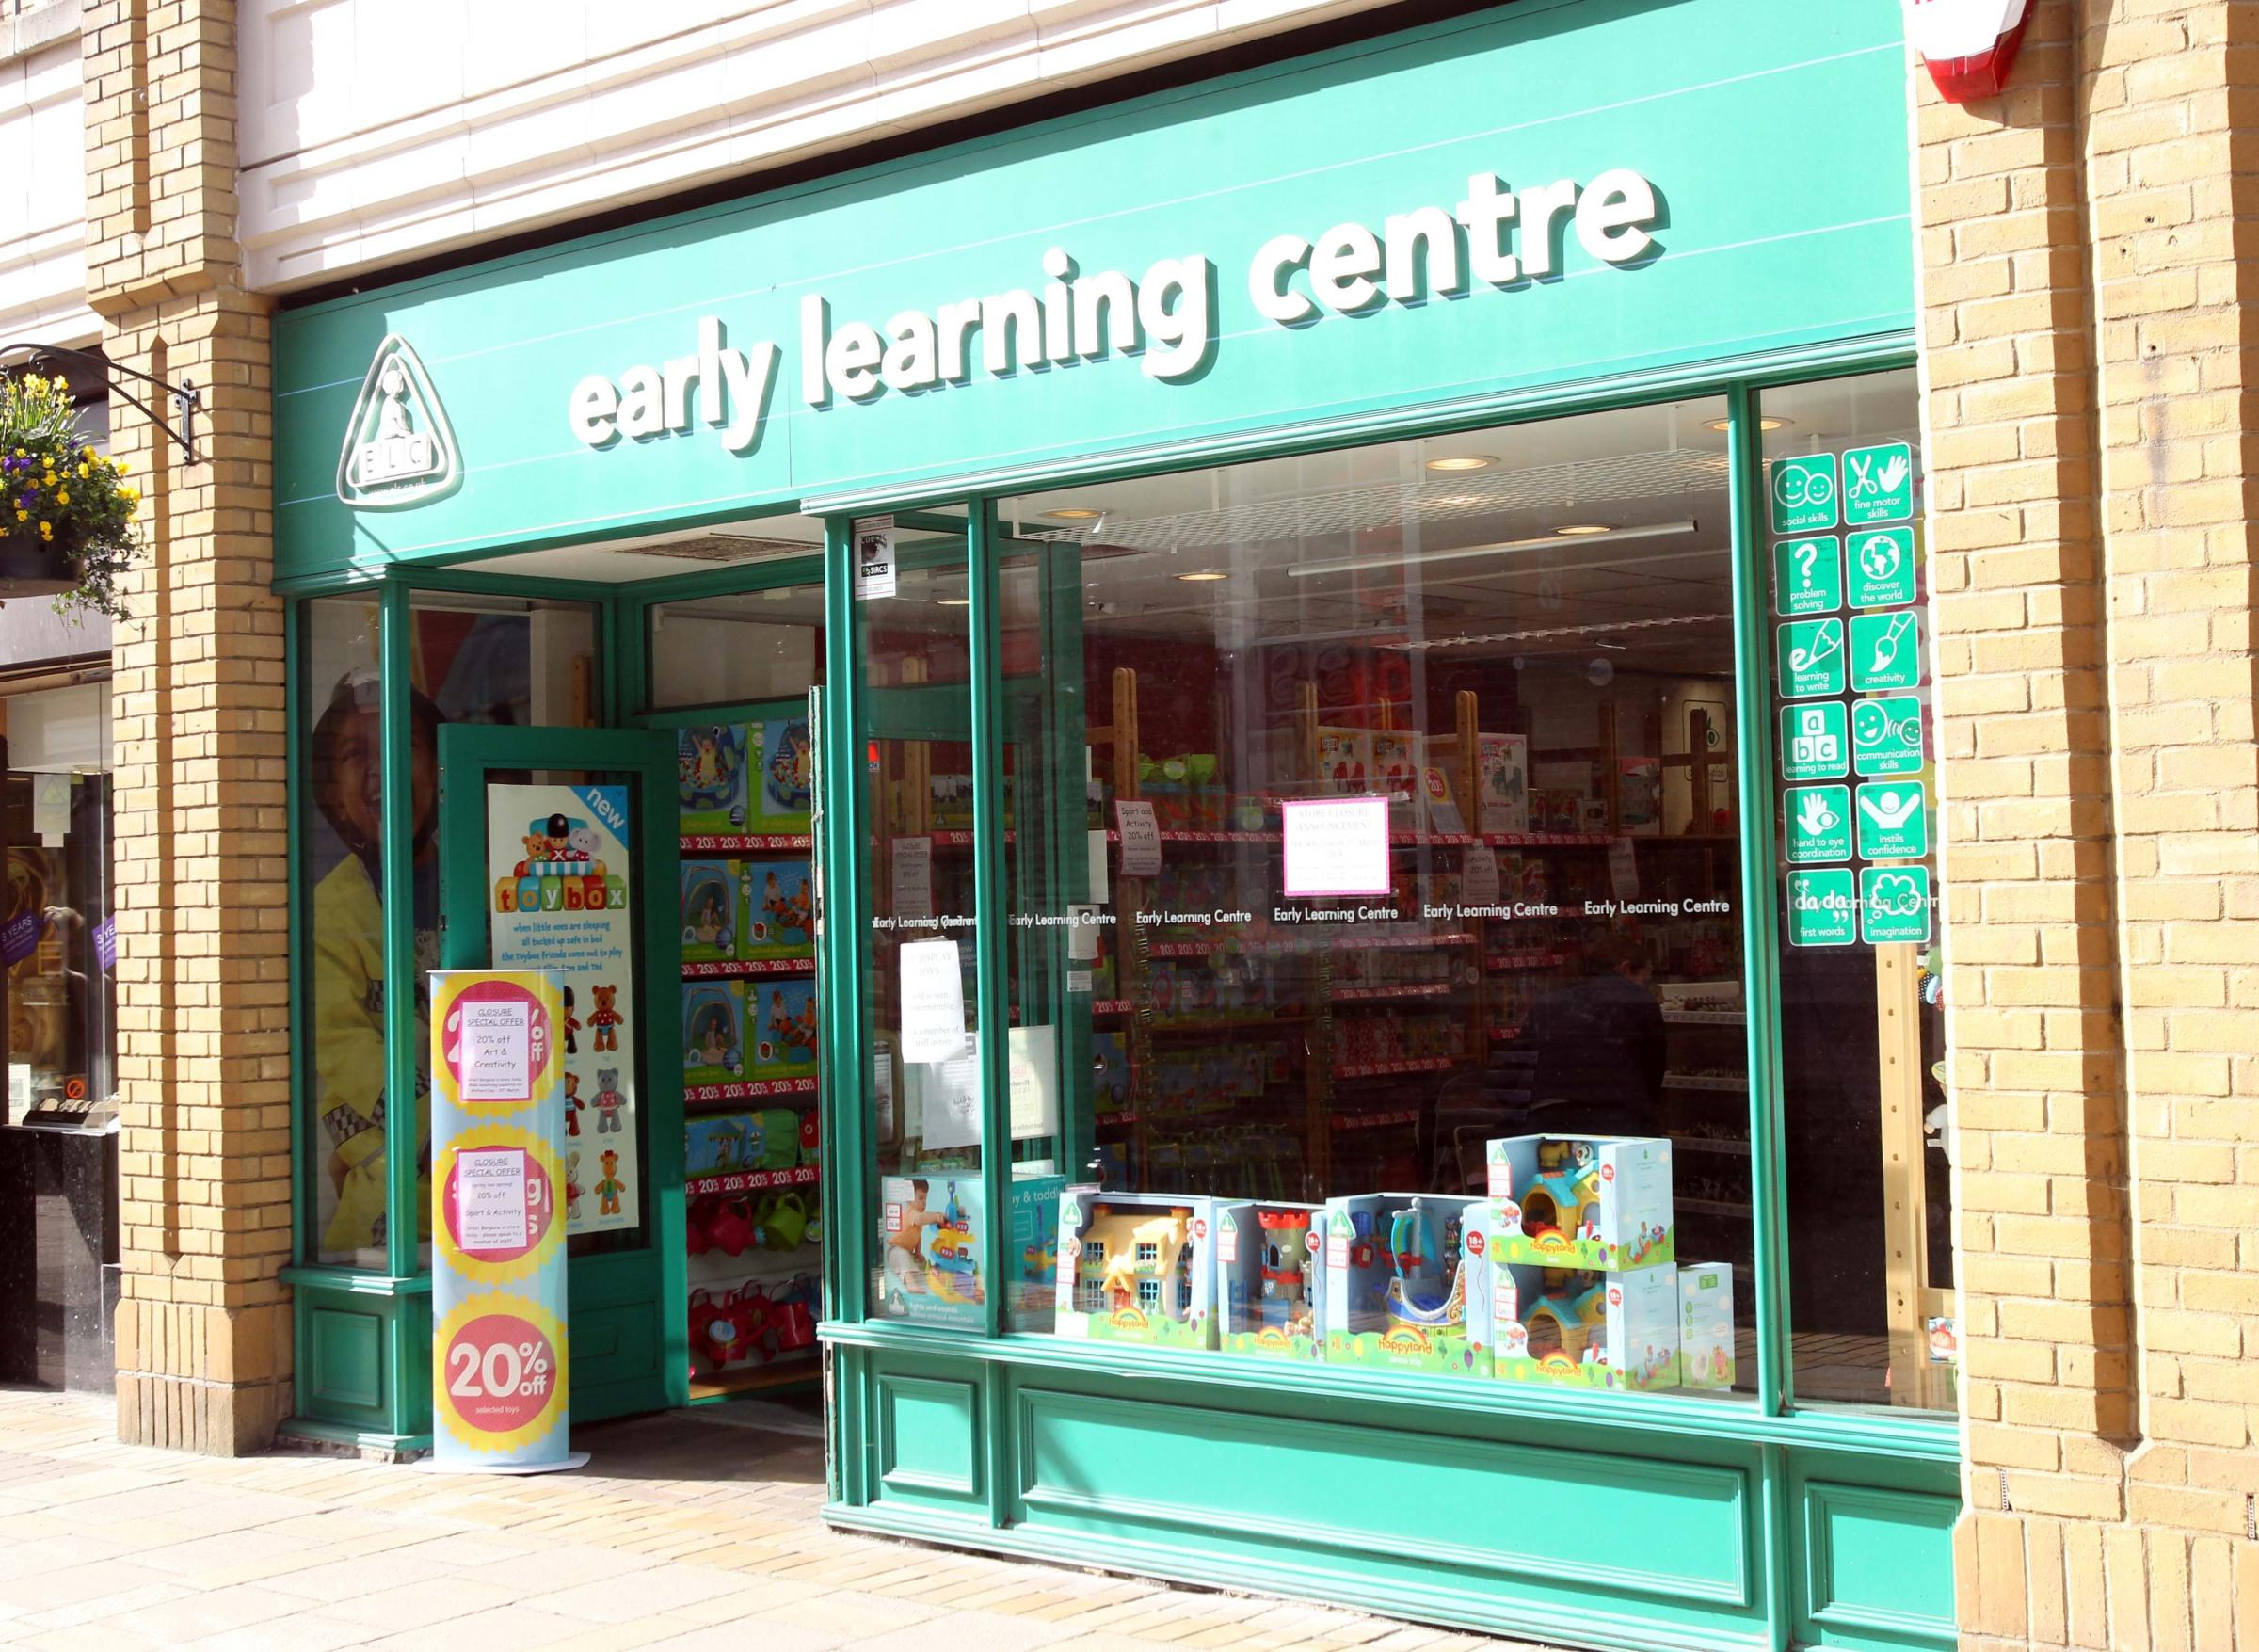 10 long-serving staff go in Early Learning closure